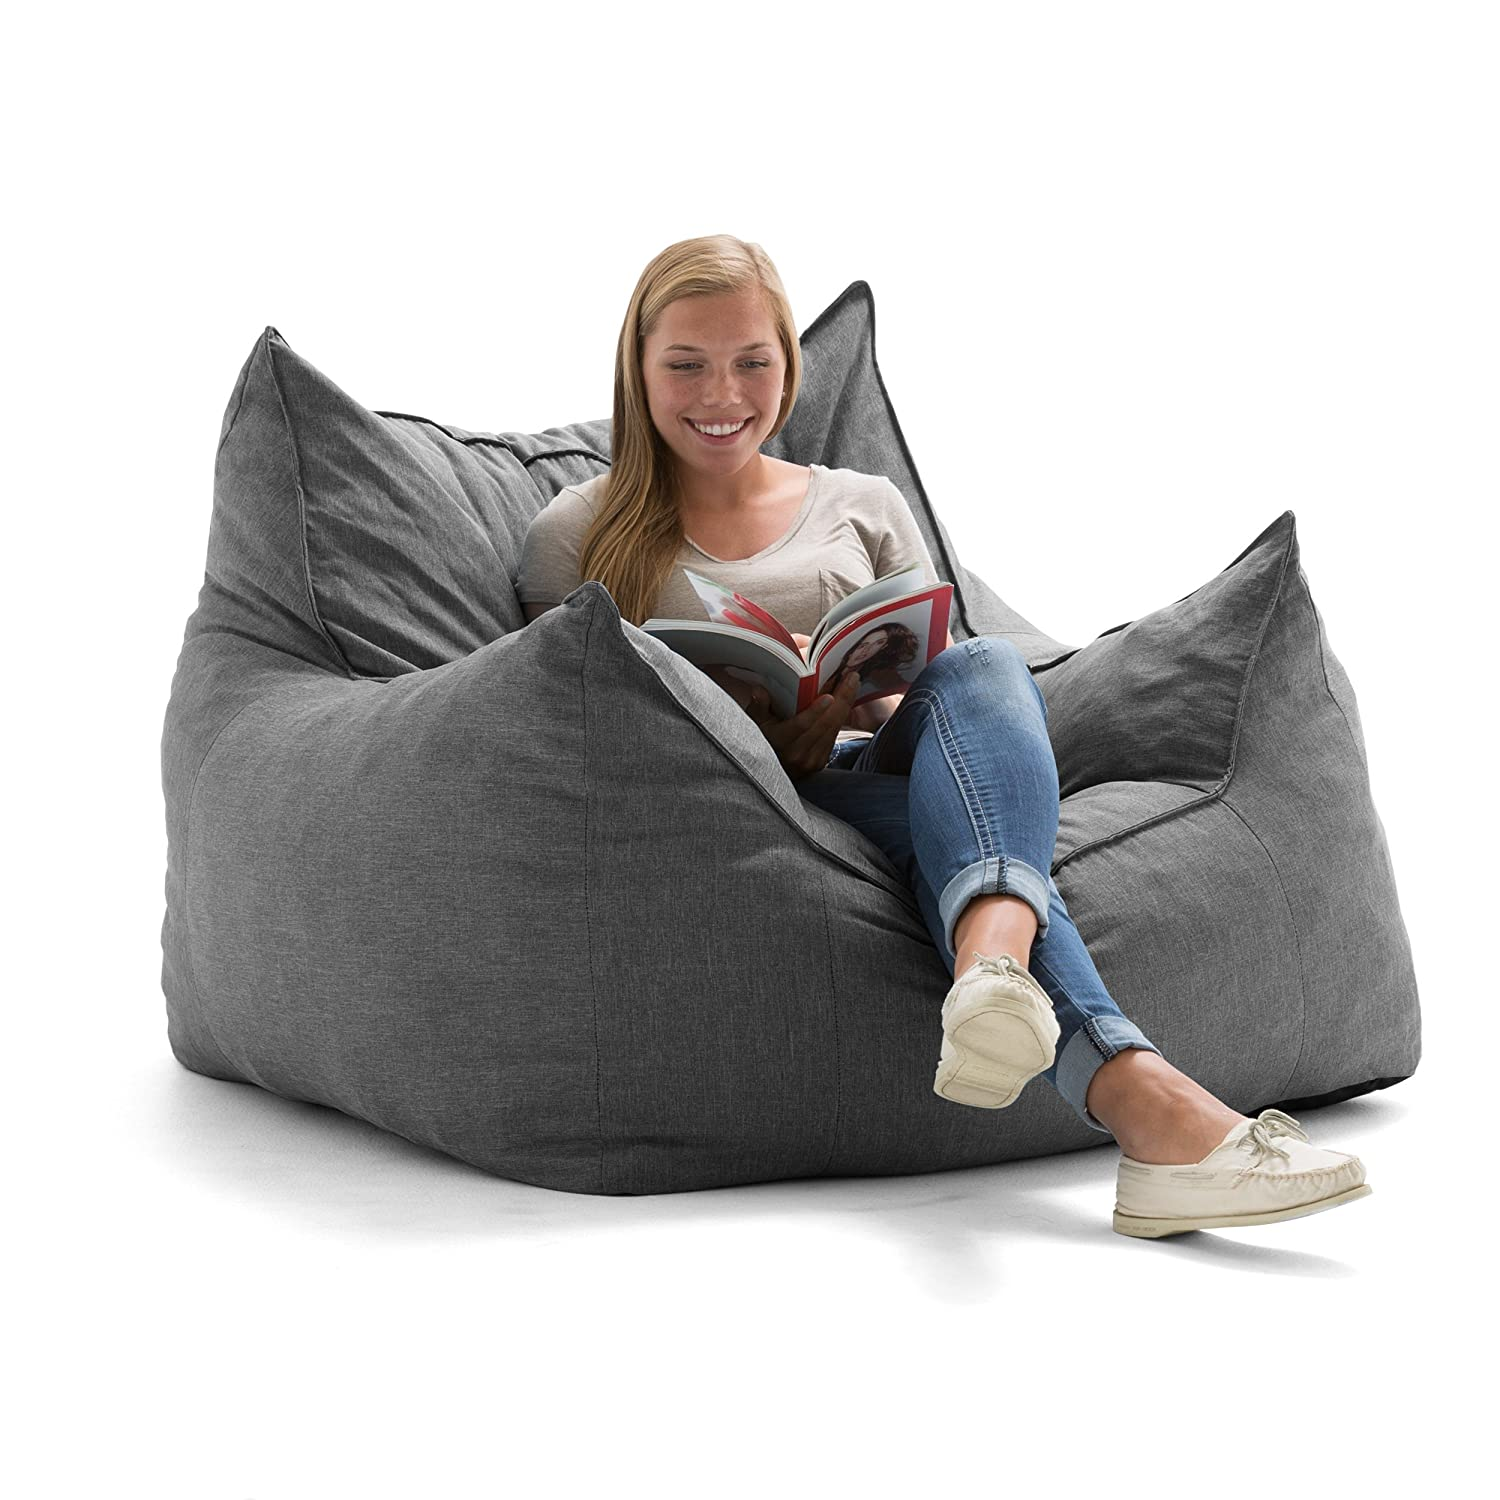 Big Joe Lux Imperial Lounger in Union, Pecan Comfort Research 0551476